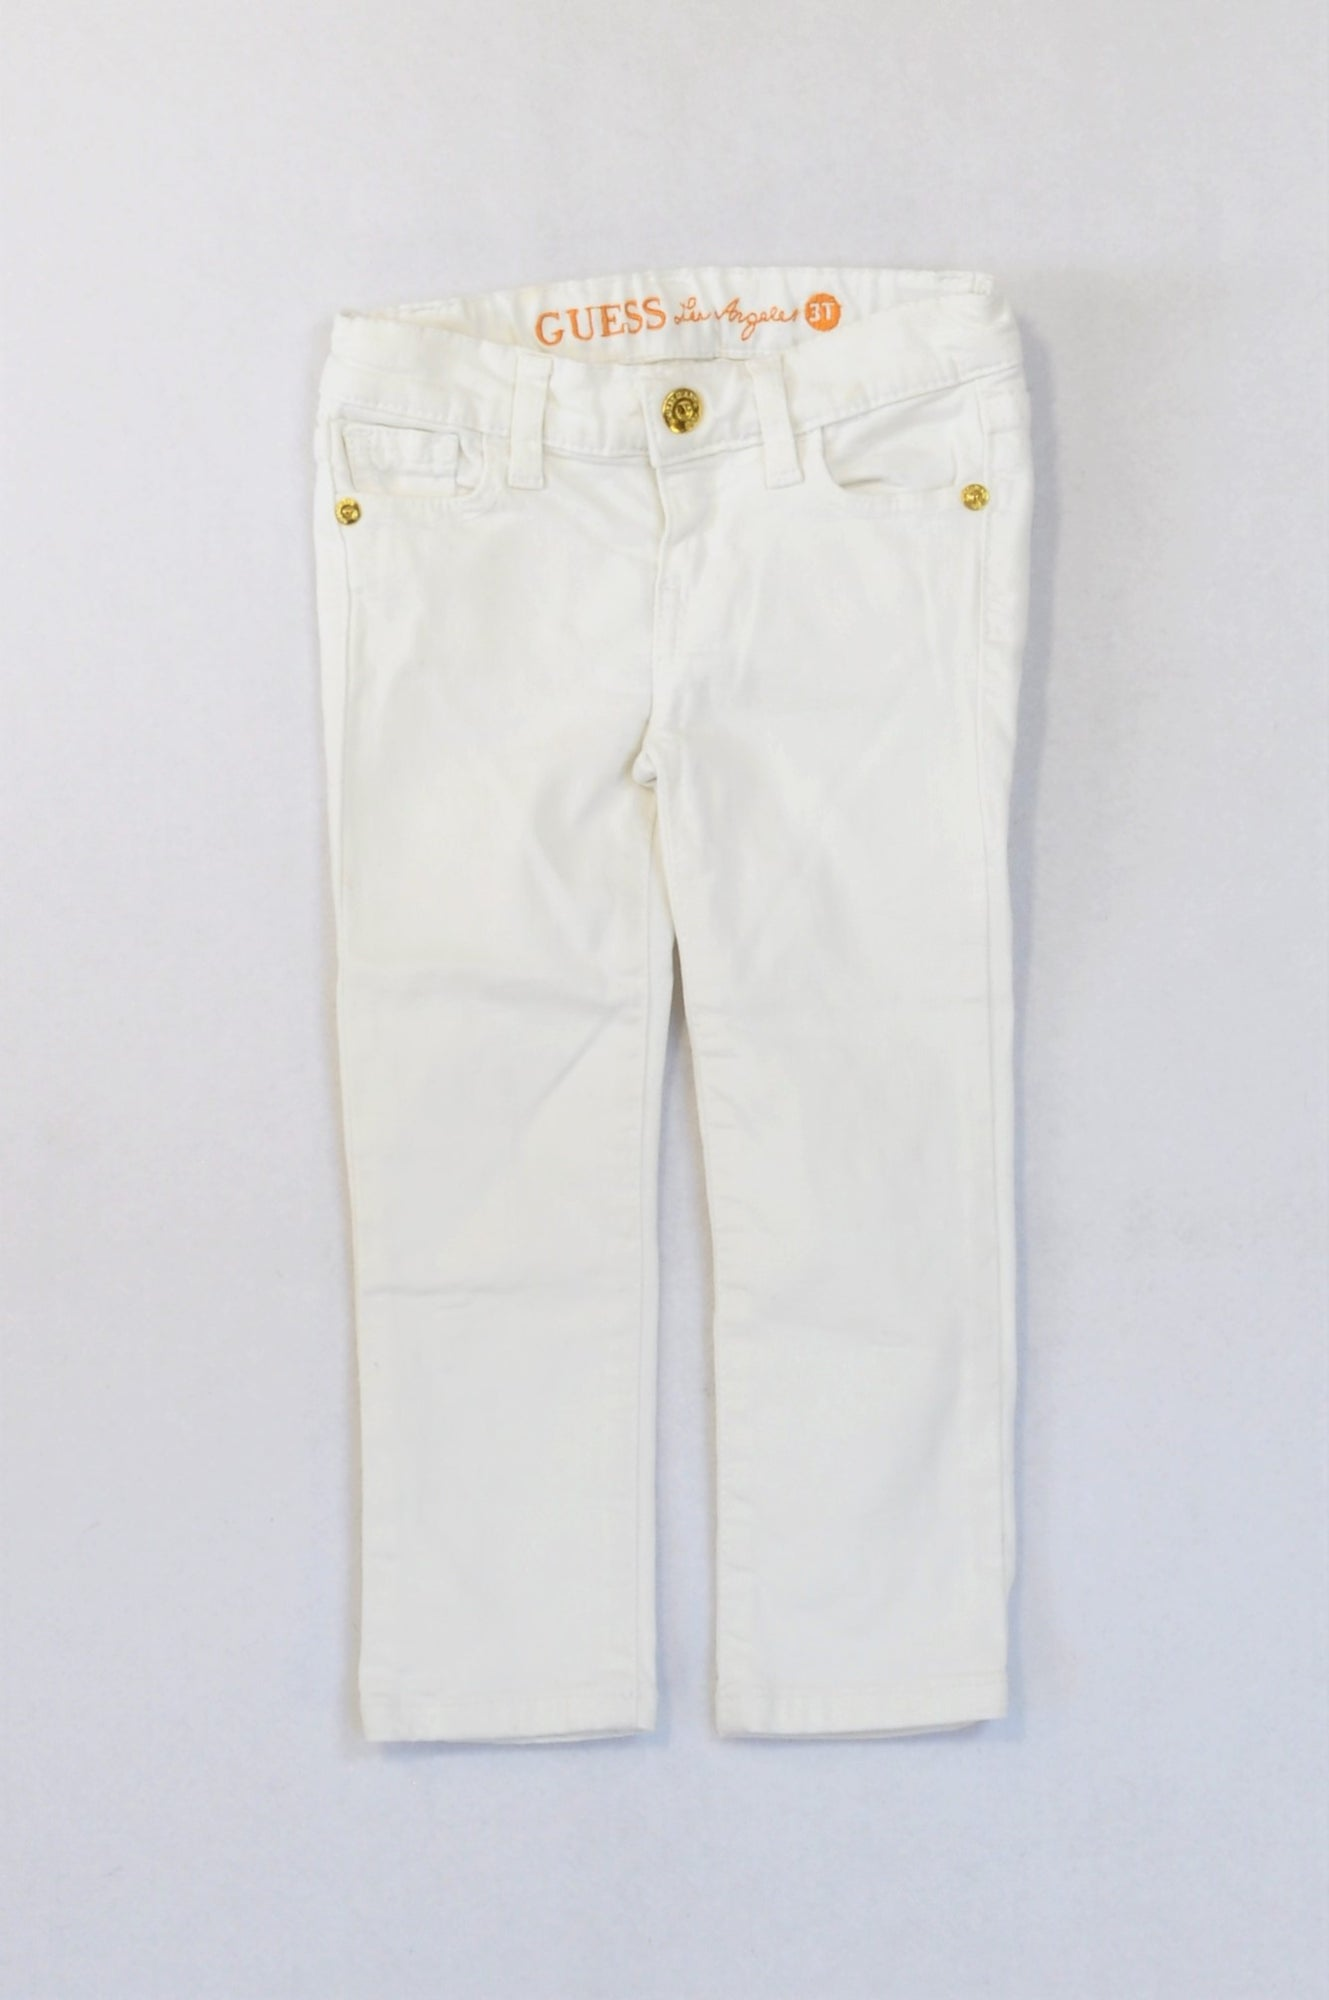 Guess White Sequin Pocket Jeans Girls 3-4 years